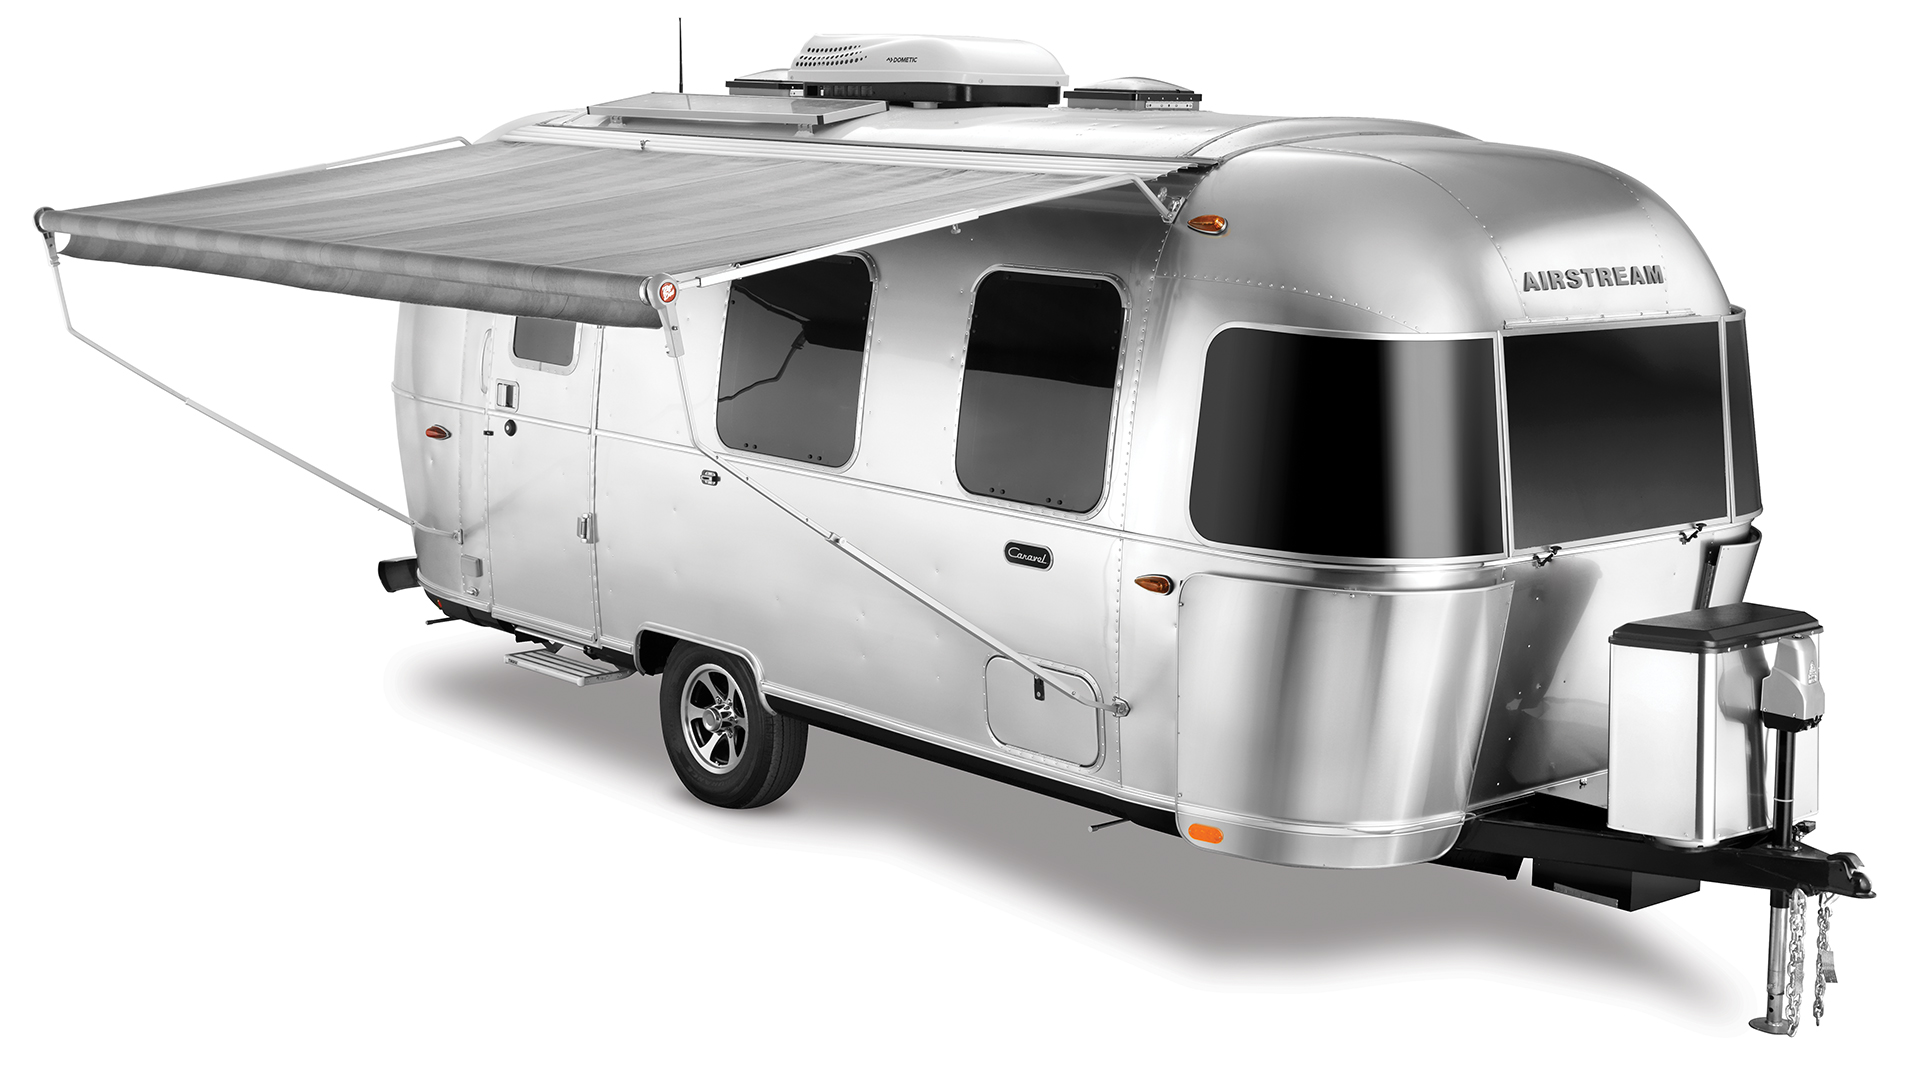 Airstream Caravel Travel Trailer 22FB